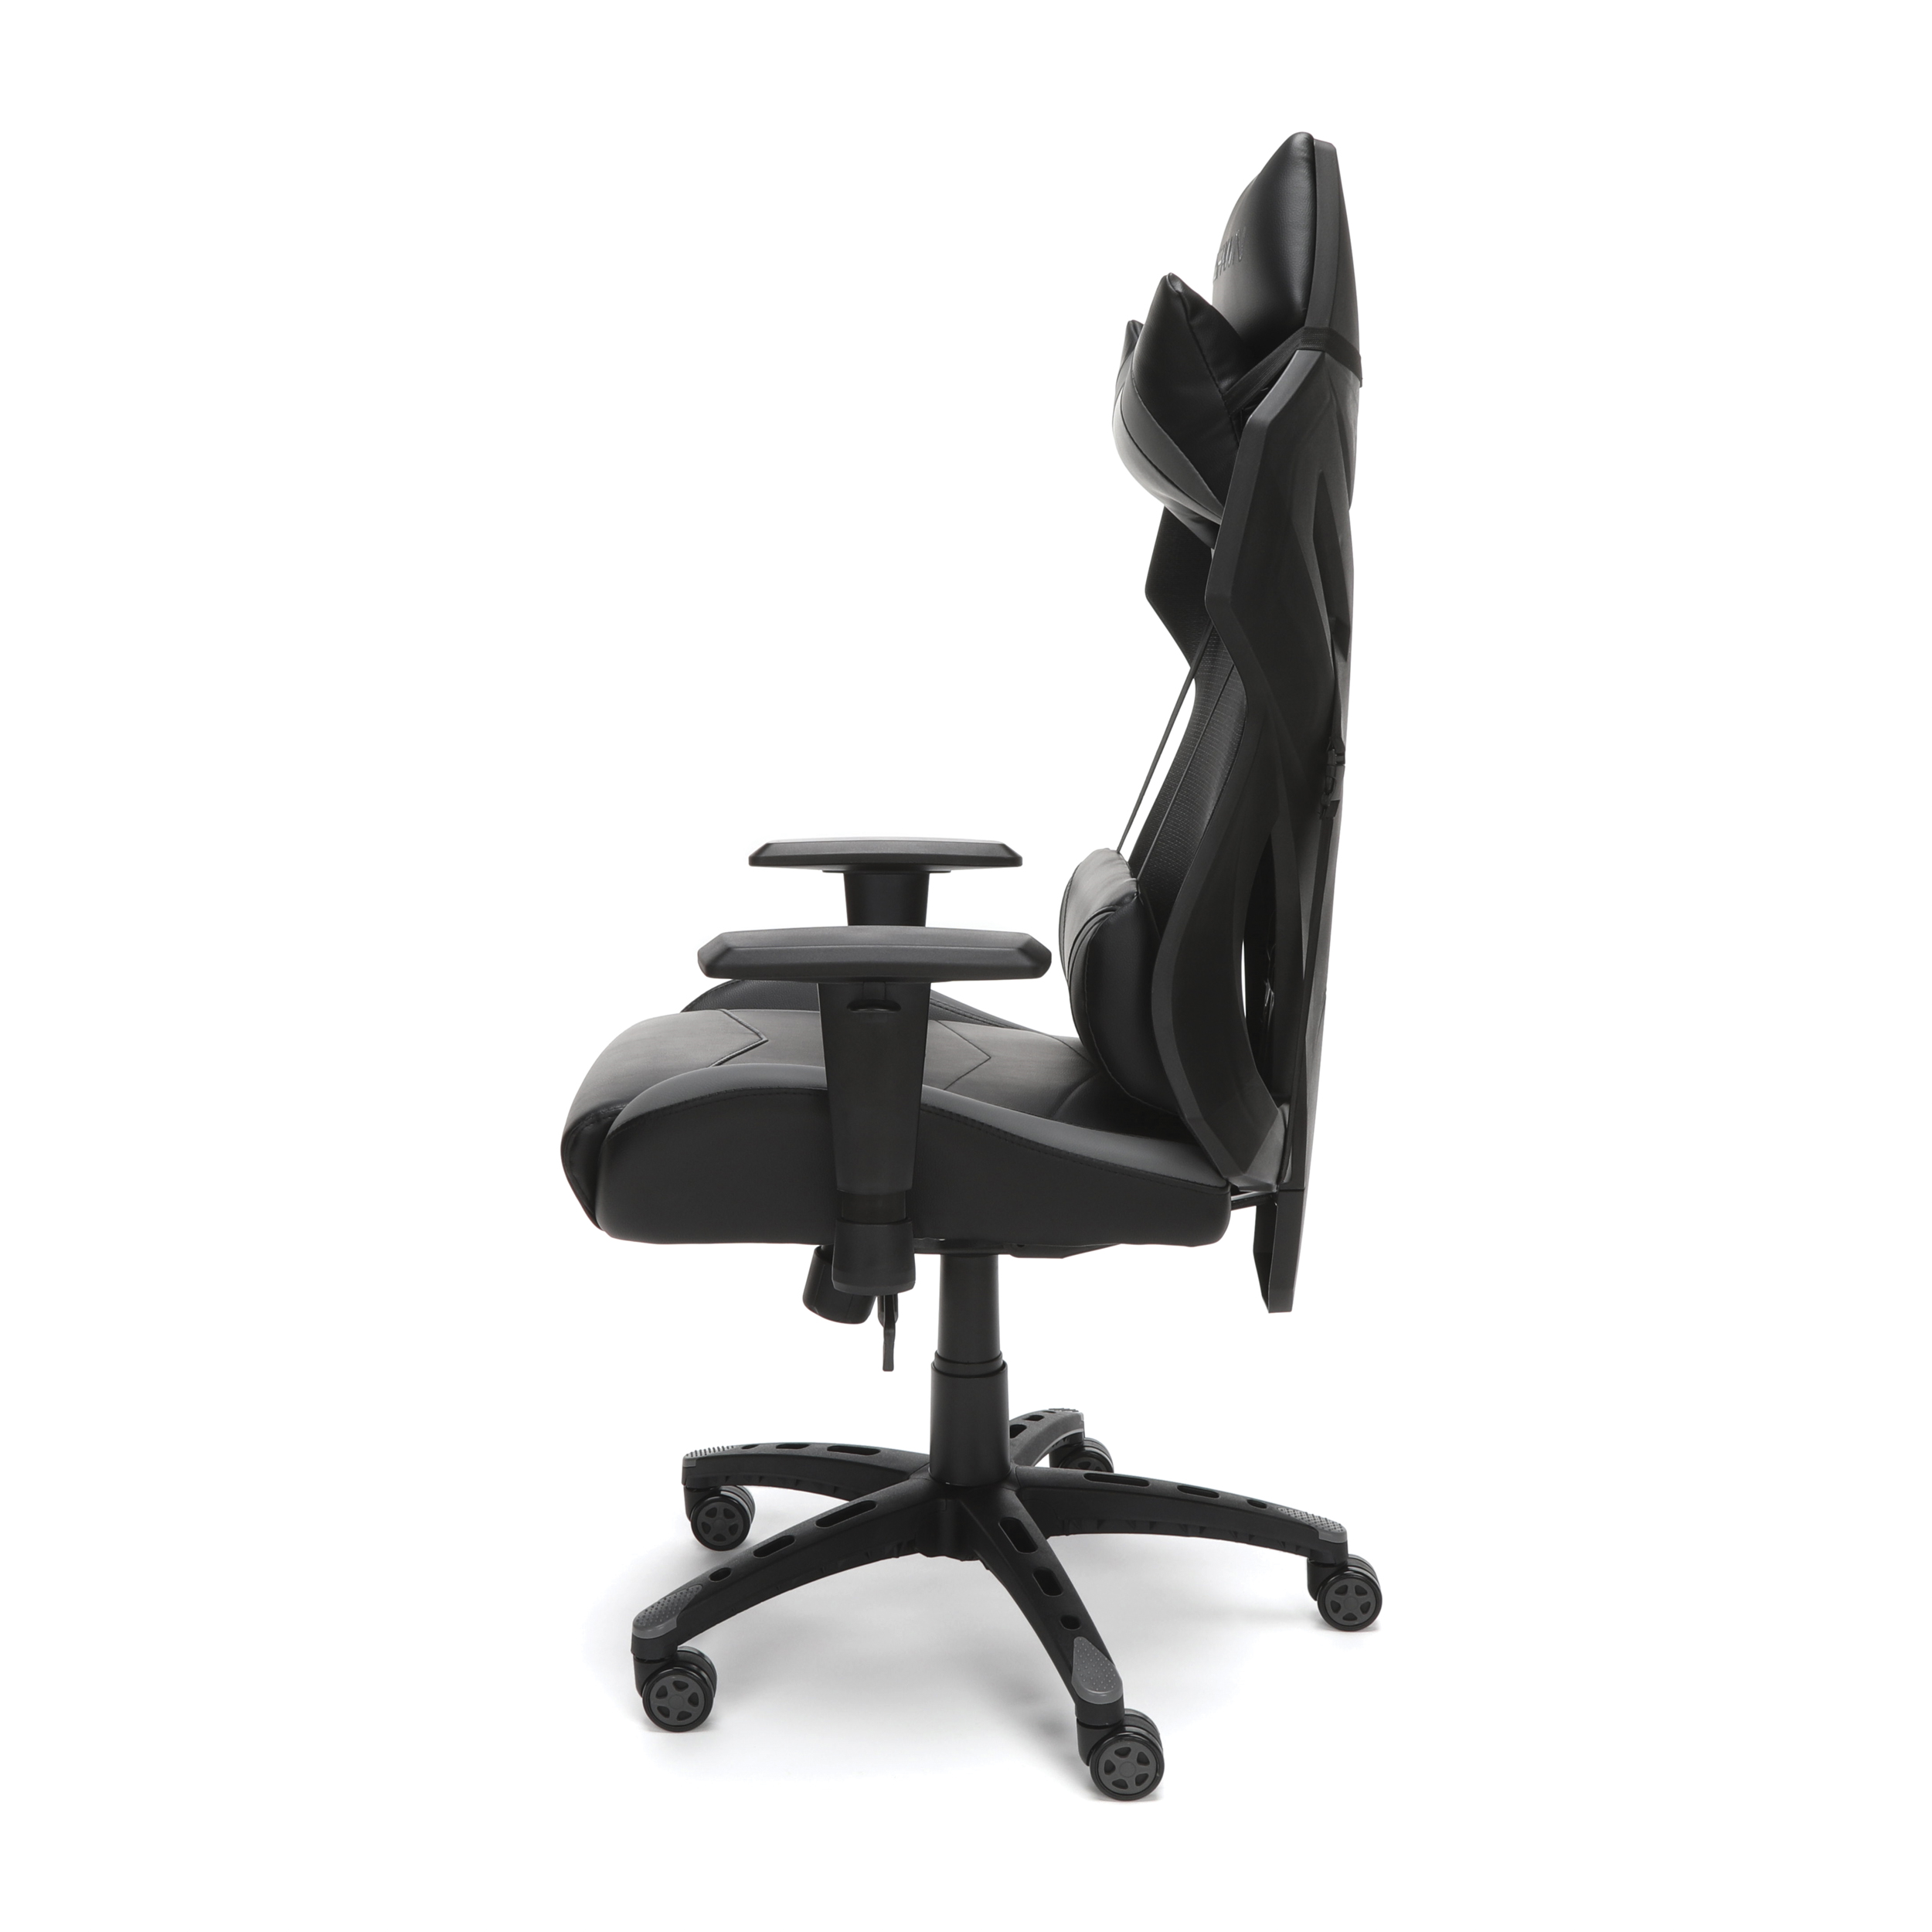 mesh gaming chair plastic office mat essentials respawn 205 racing style ergonomic performance back or